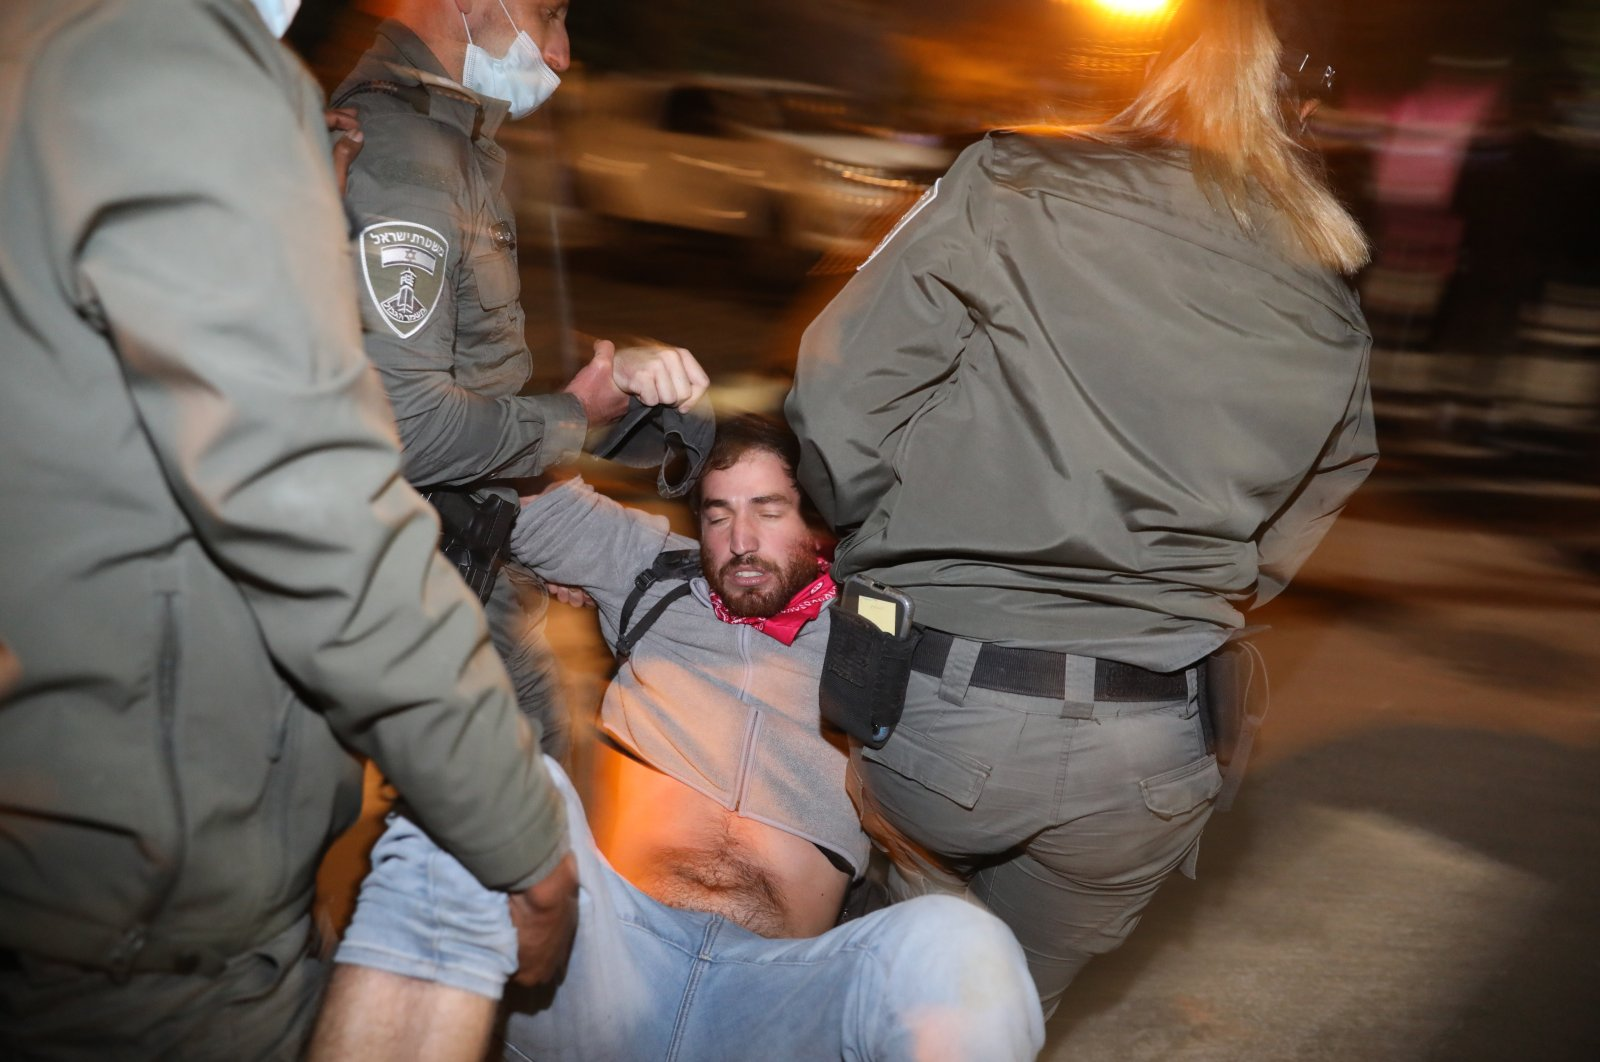 Police arrest an Anti-Netanyahu protester during a rally against the Israeli Prime Minister outside his residence, in Jerusalem, Israel, 05 December 2020. (EPA Photo)